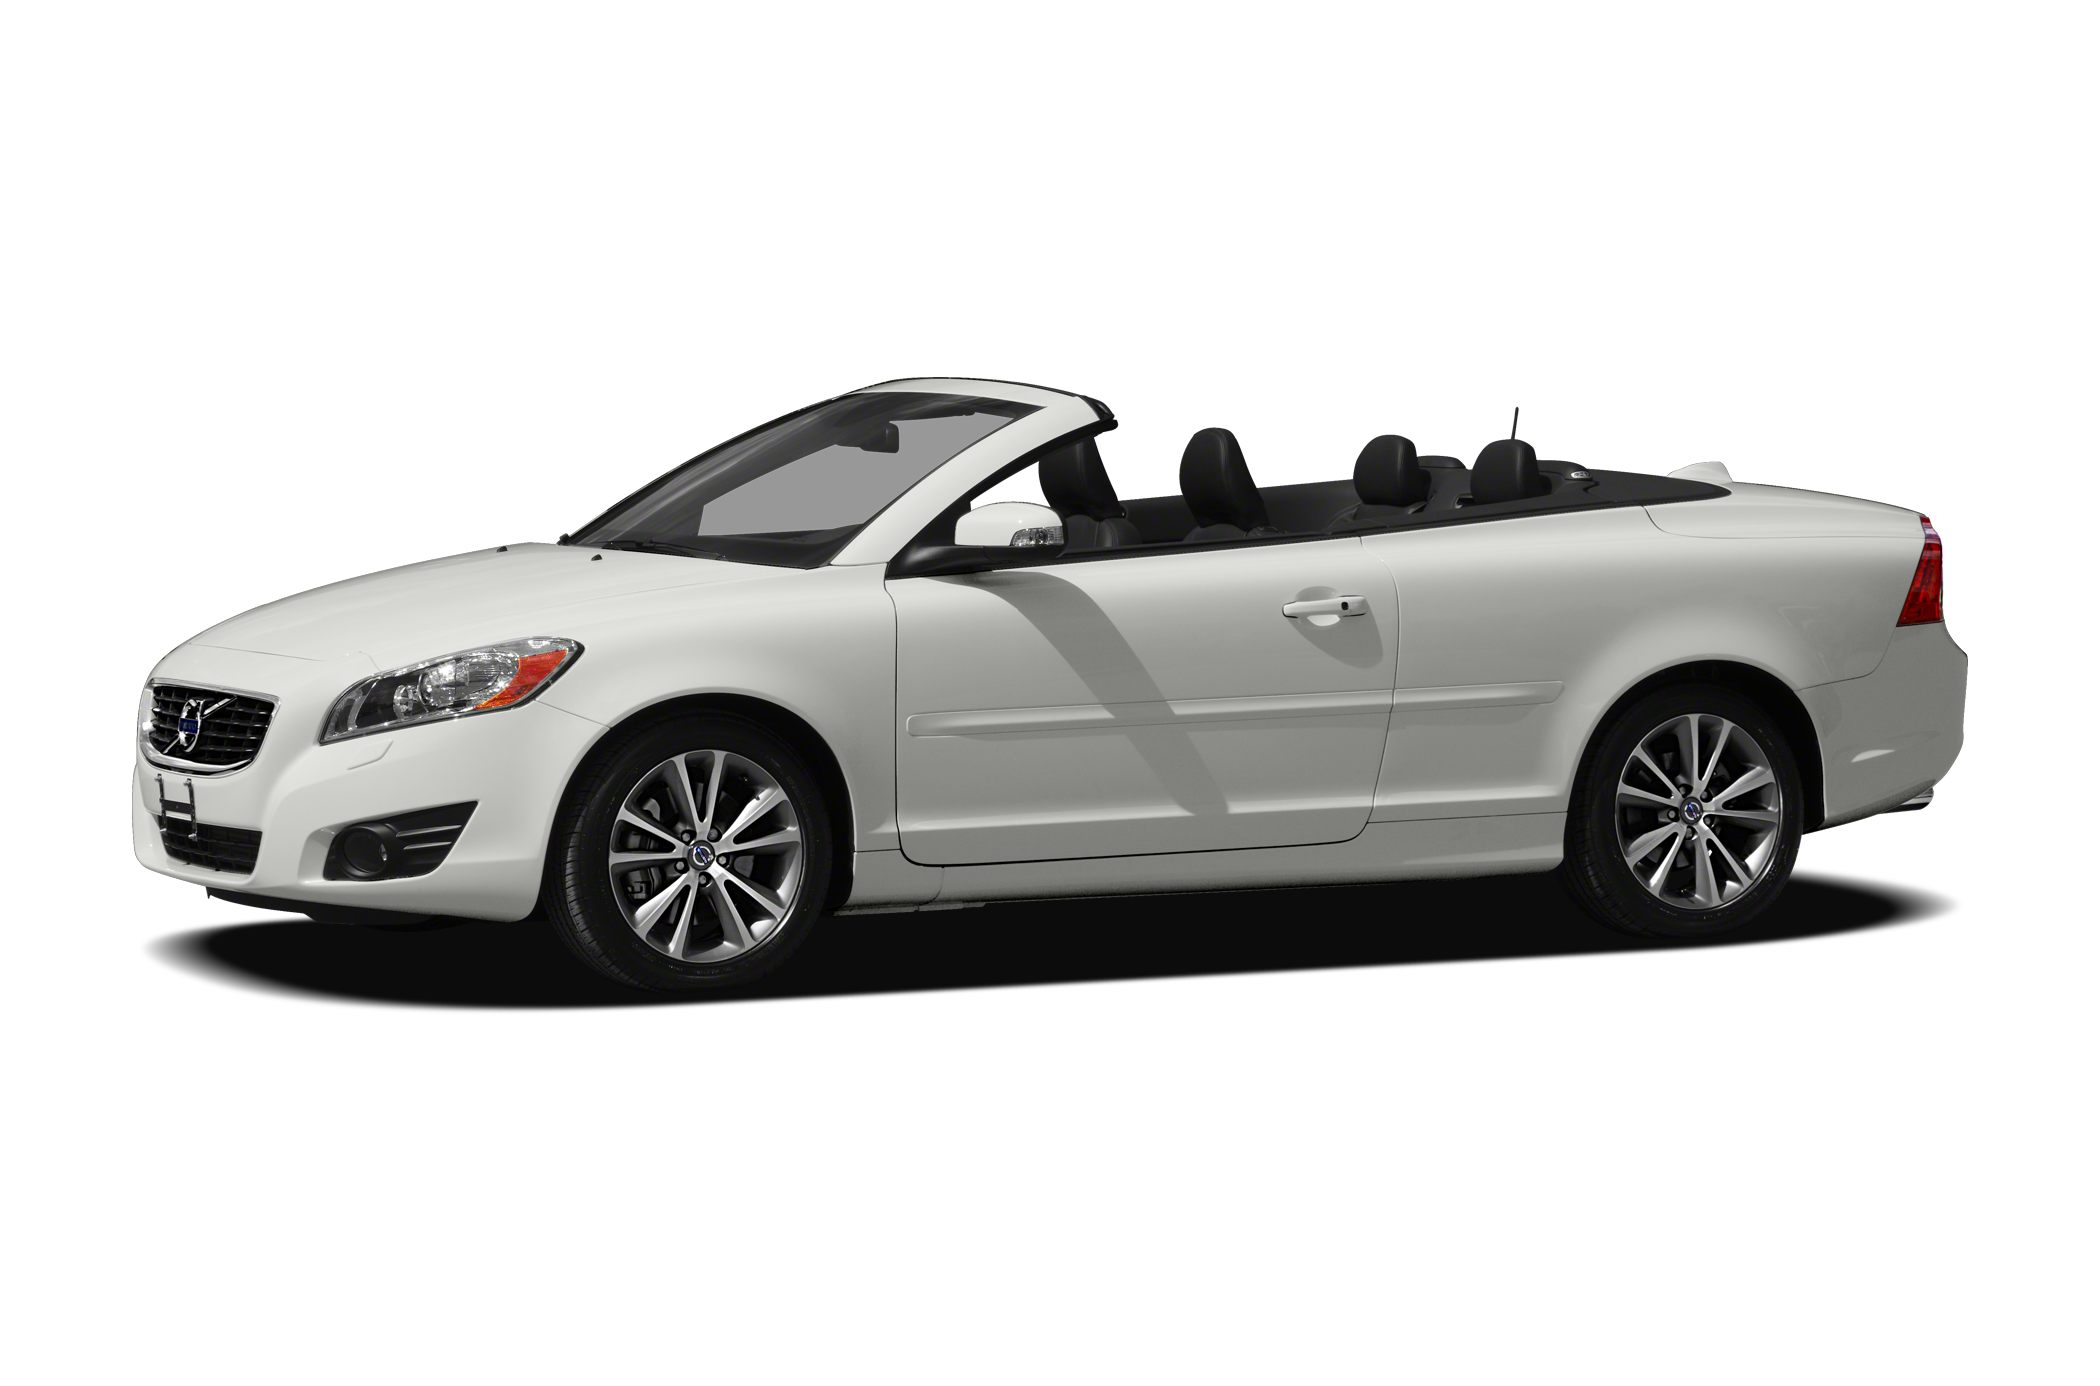 volvo at condition for amazing used drummondville sale hyundai convertible